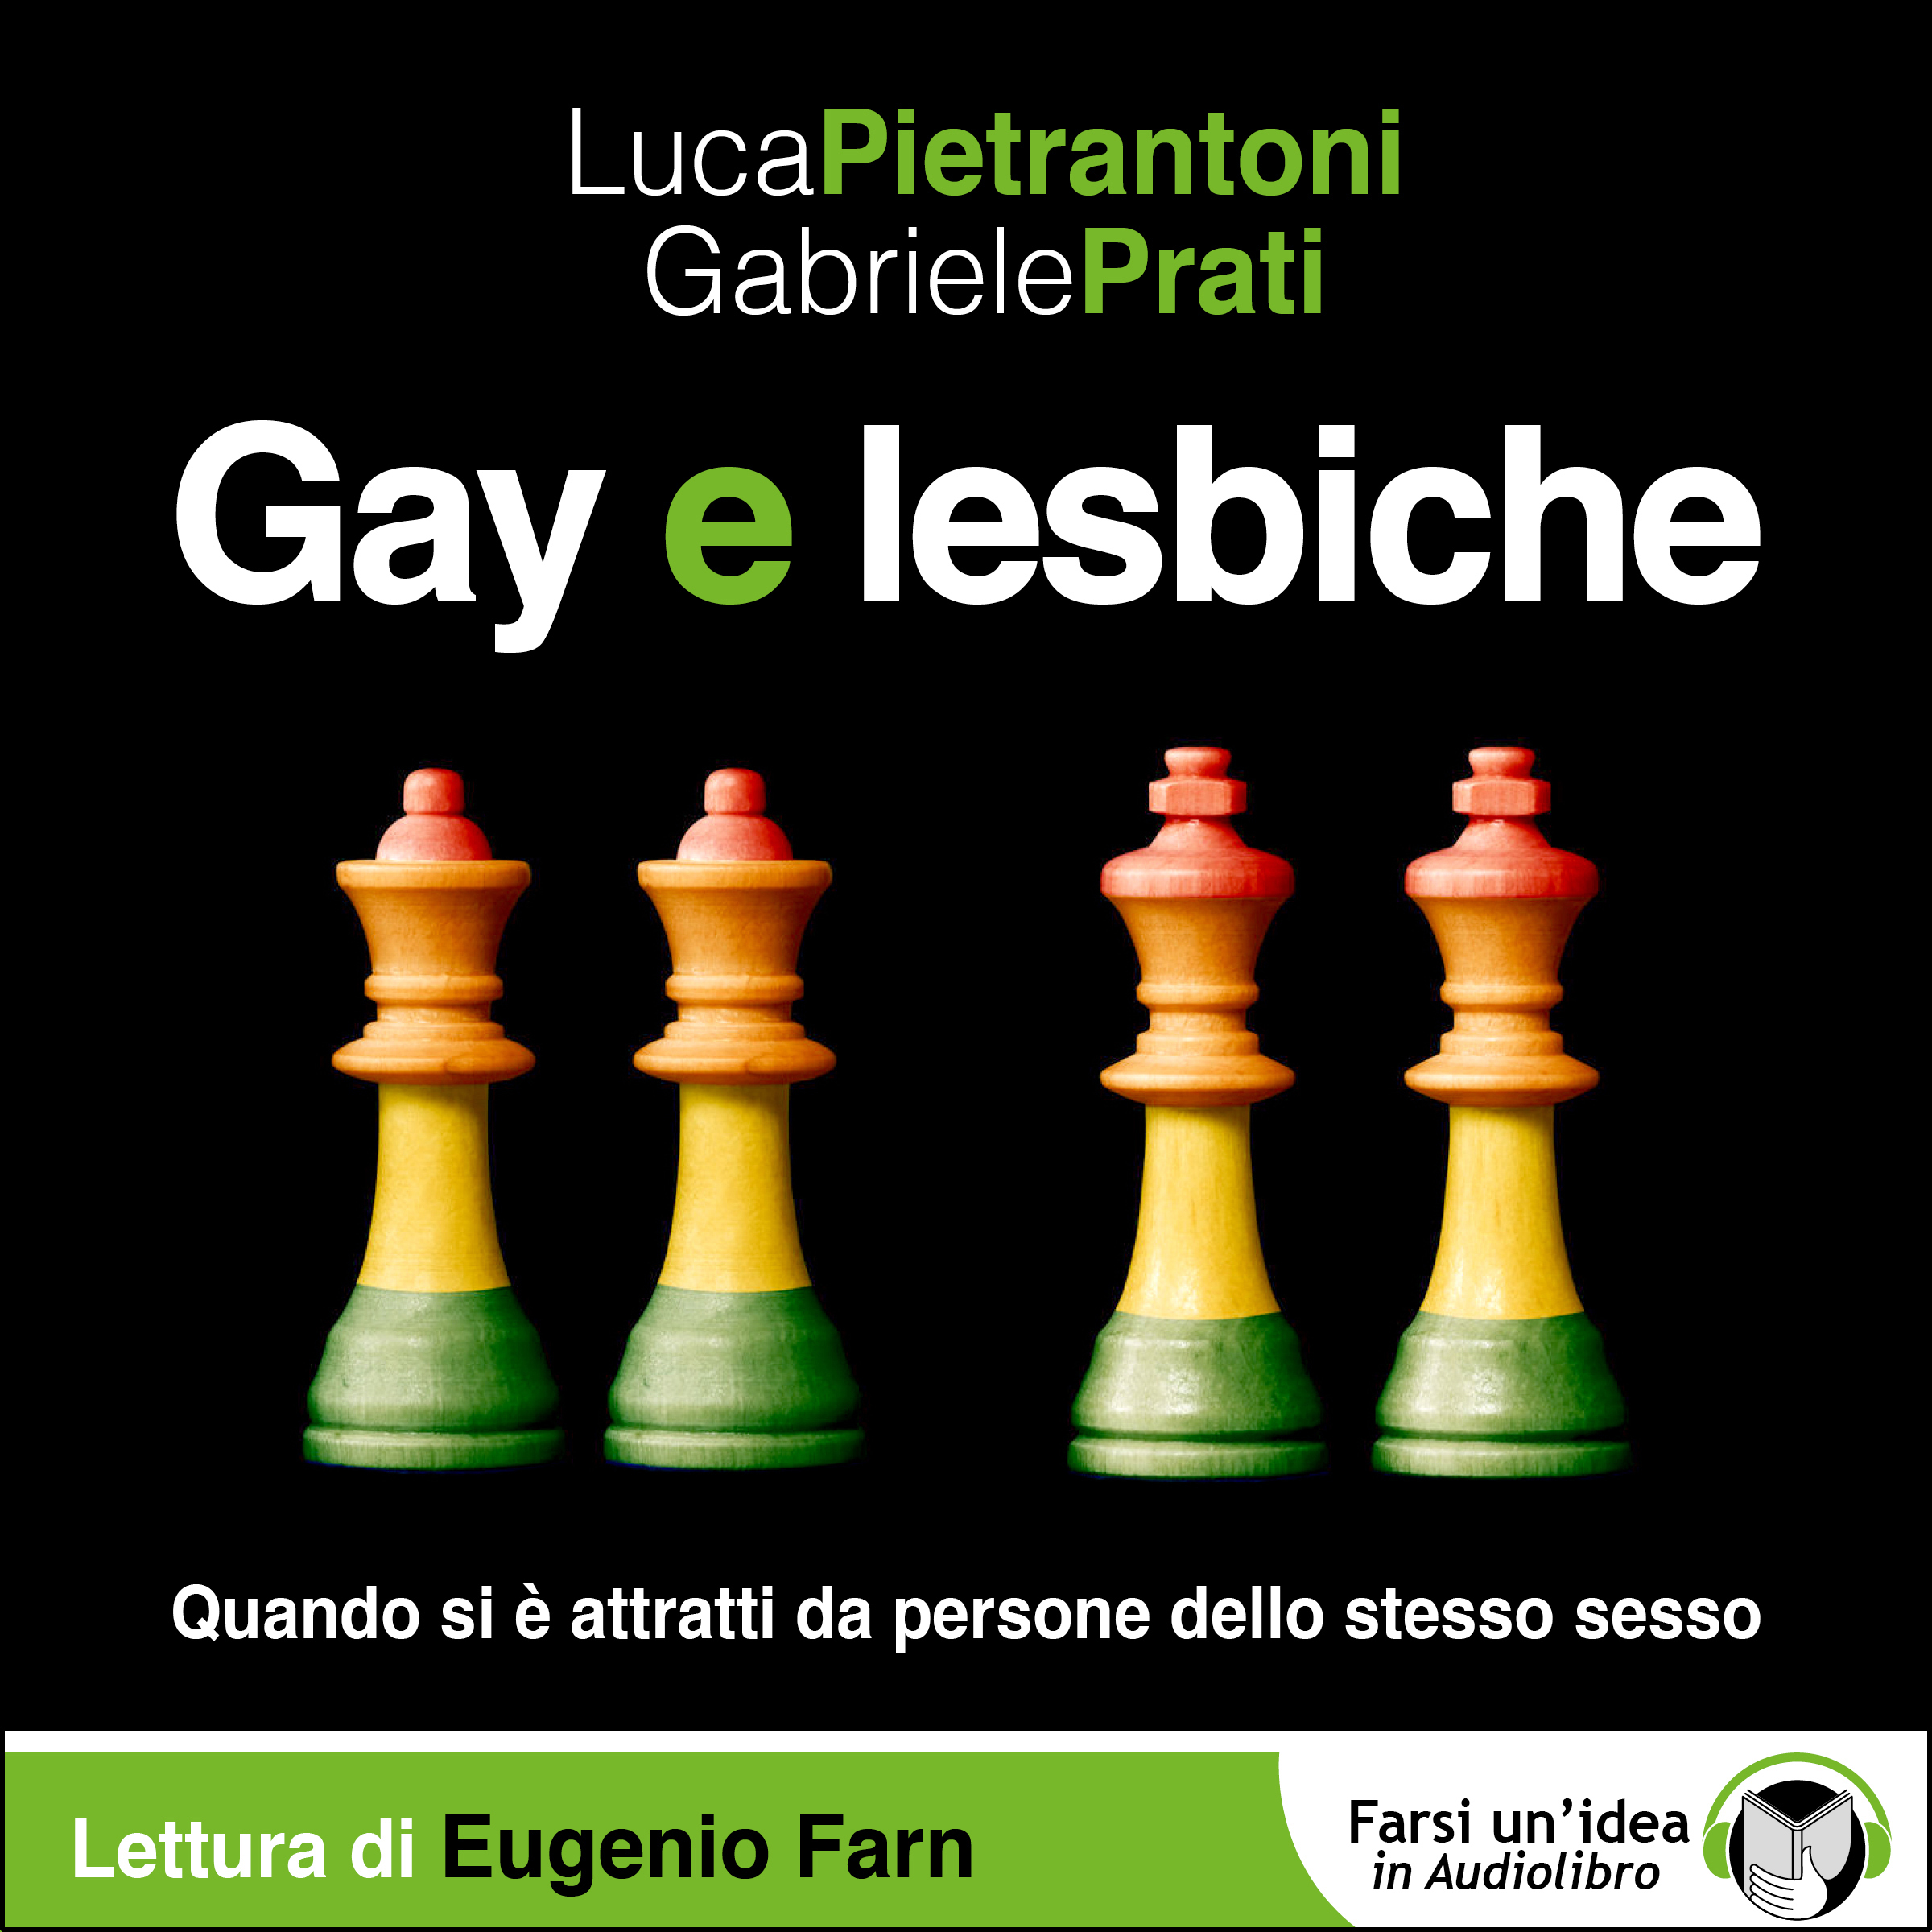 Gay e Lesbiche, Pietrantoni e Prati, Ed. il Narratore FARSI UN'IDEA IN AUDIOLIBRO